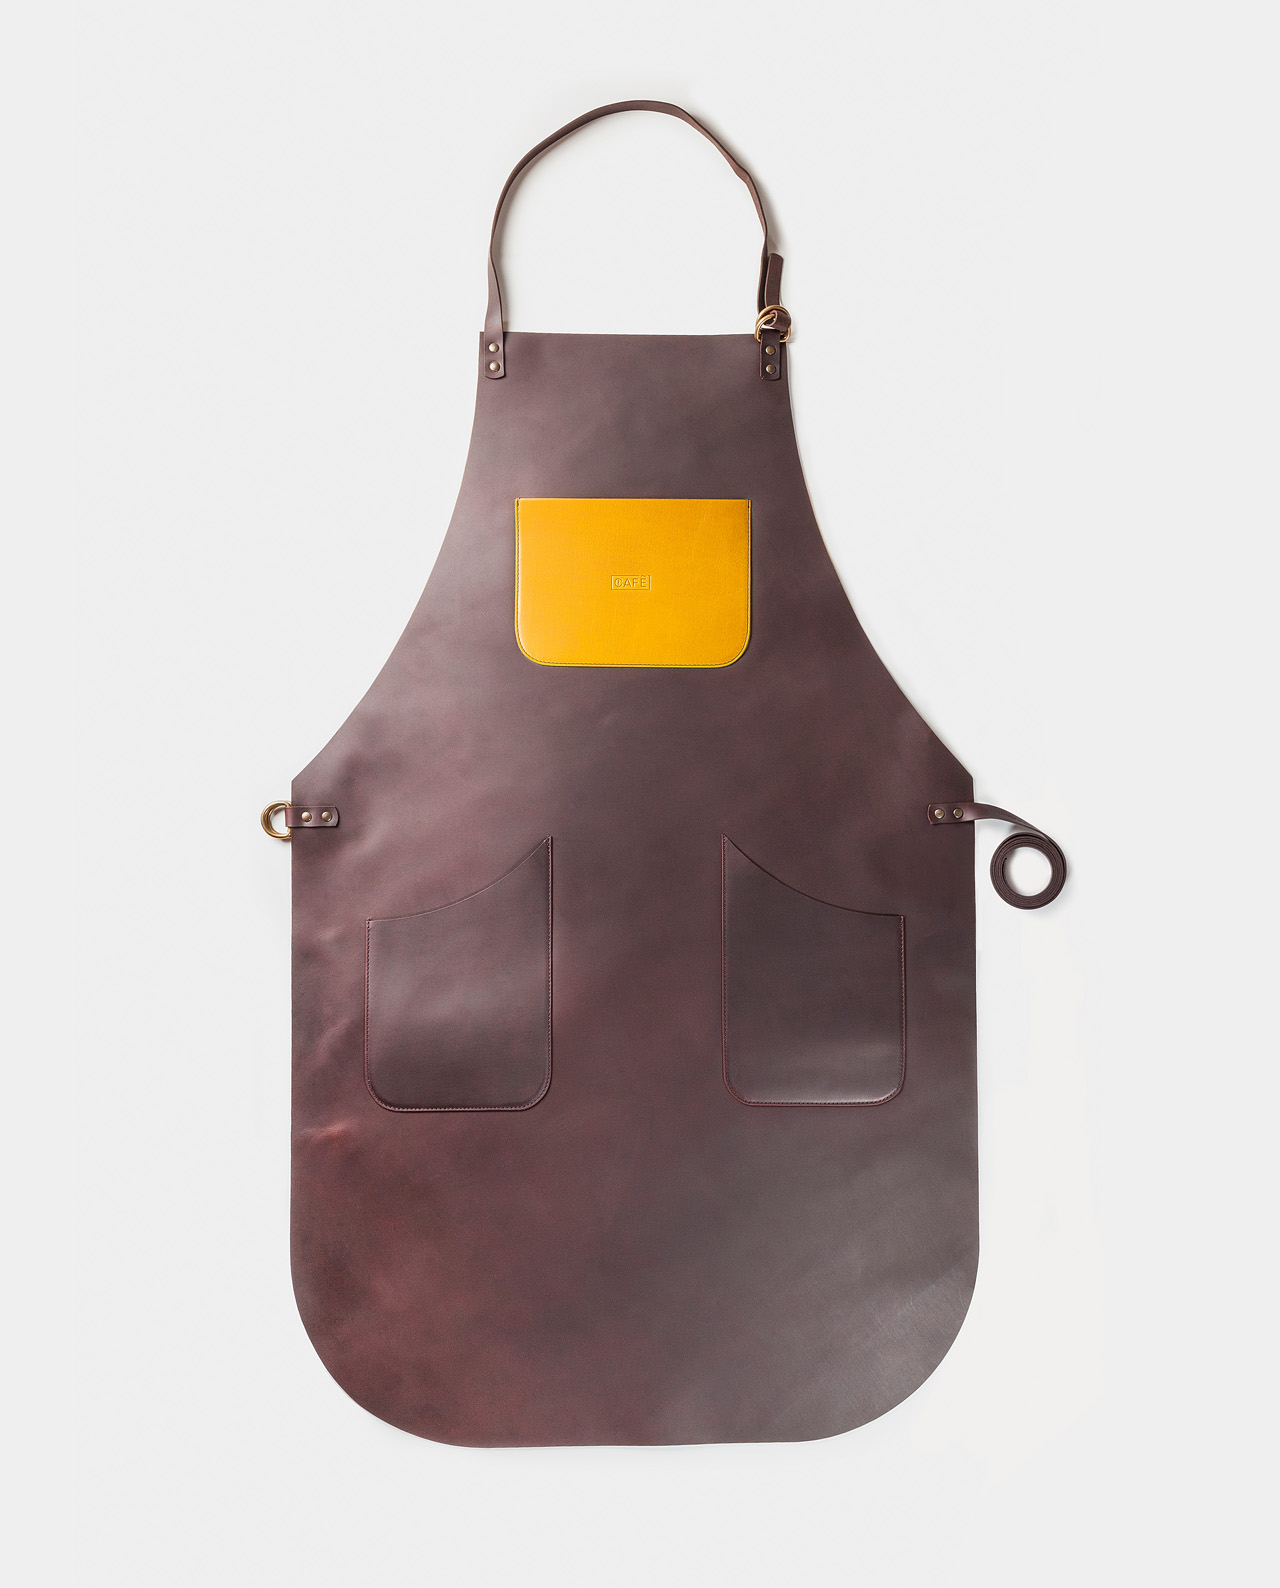 Delantal de piel de curtición vegetal. Full leather apron, vegetable tanned leather.